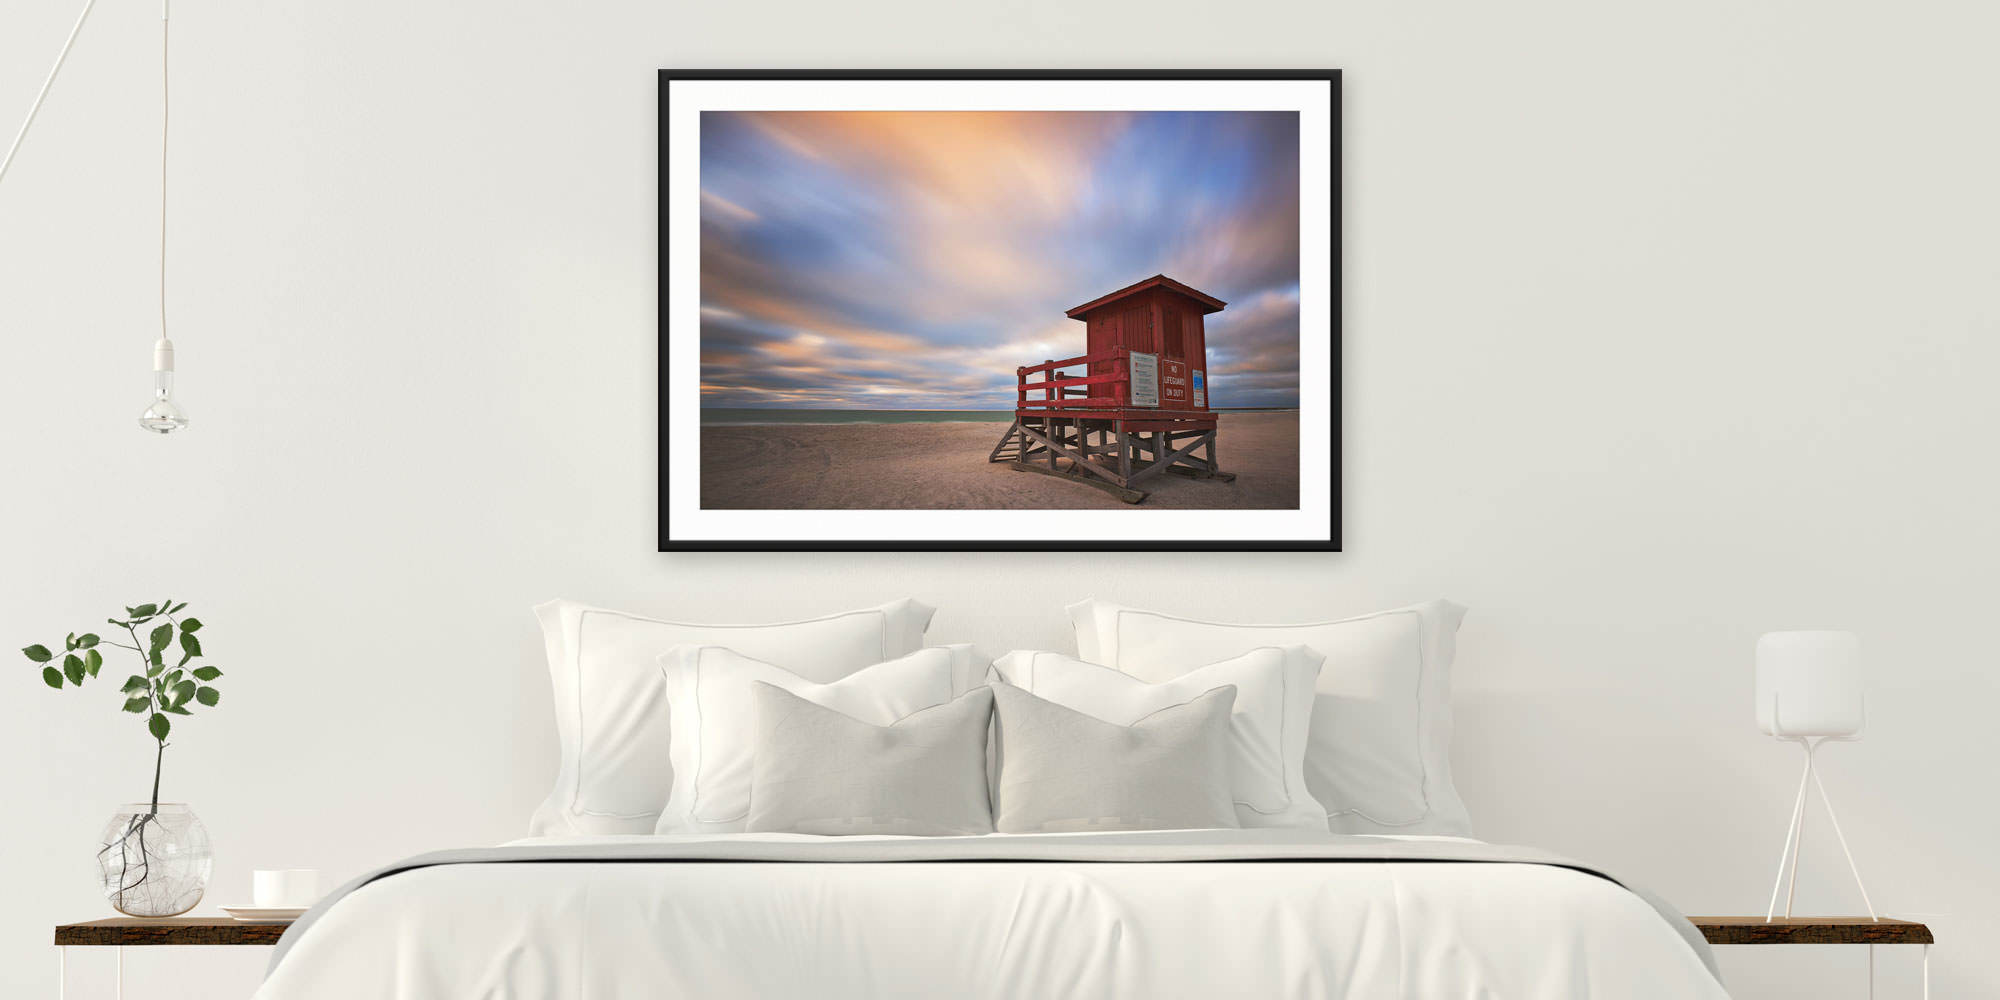 <div class='title'>           Guardian - Clearwater Beach, Florida by Andrew Vernon         </div>                 <div class='description'>           A framed and matted print of Guardian by Andrew Vernon hangs in a modern bedroom         </div>